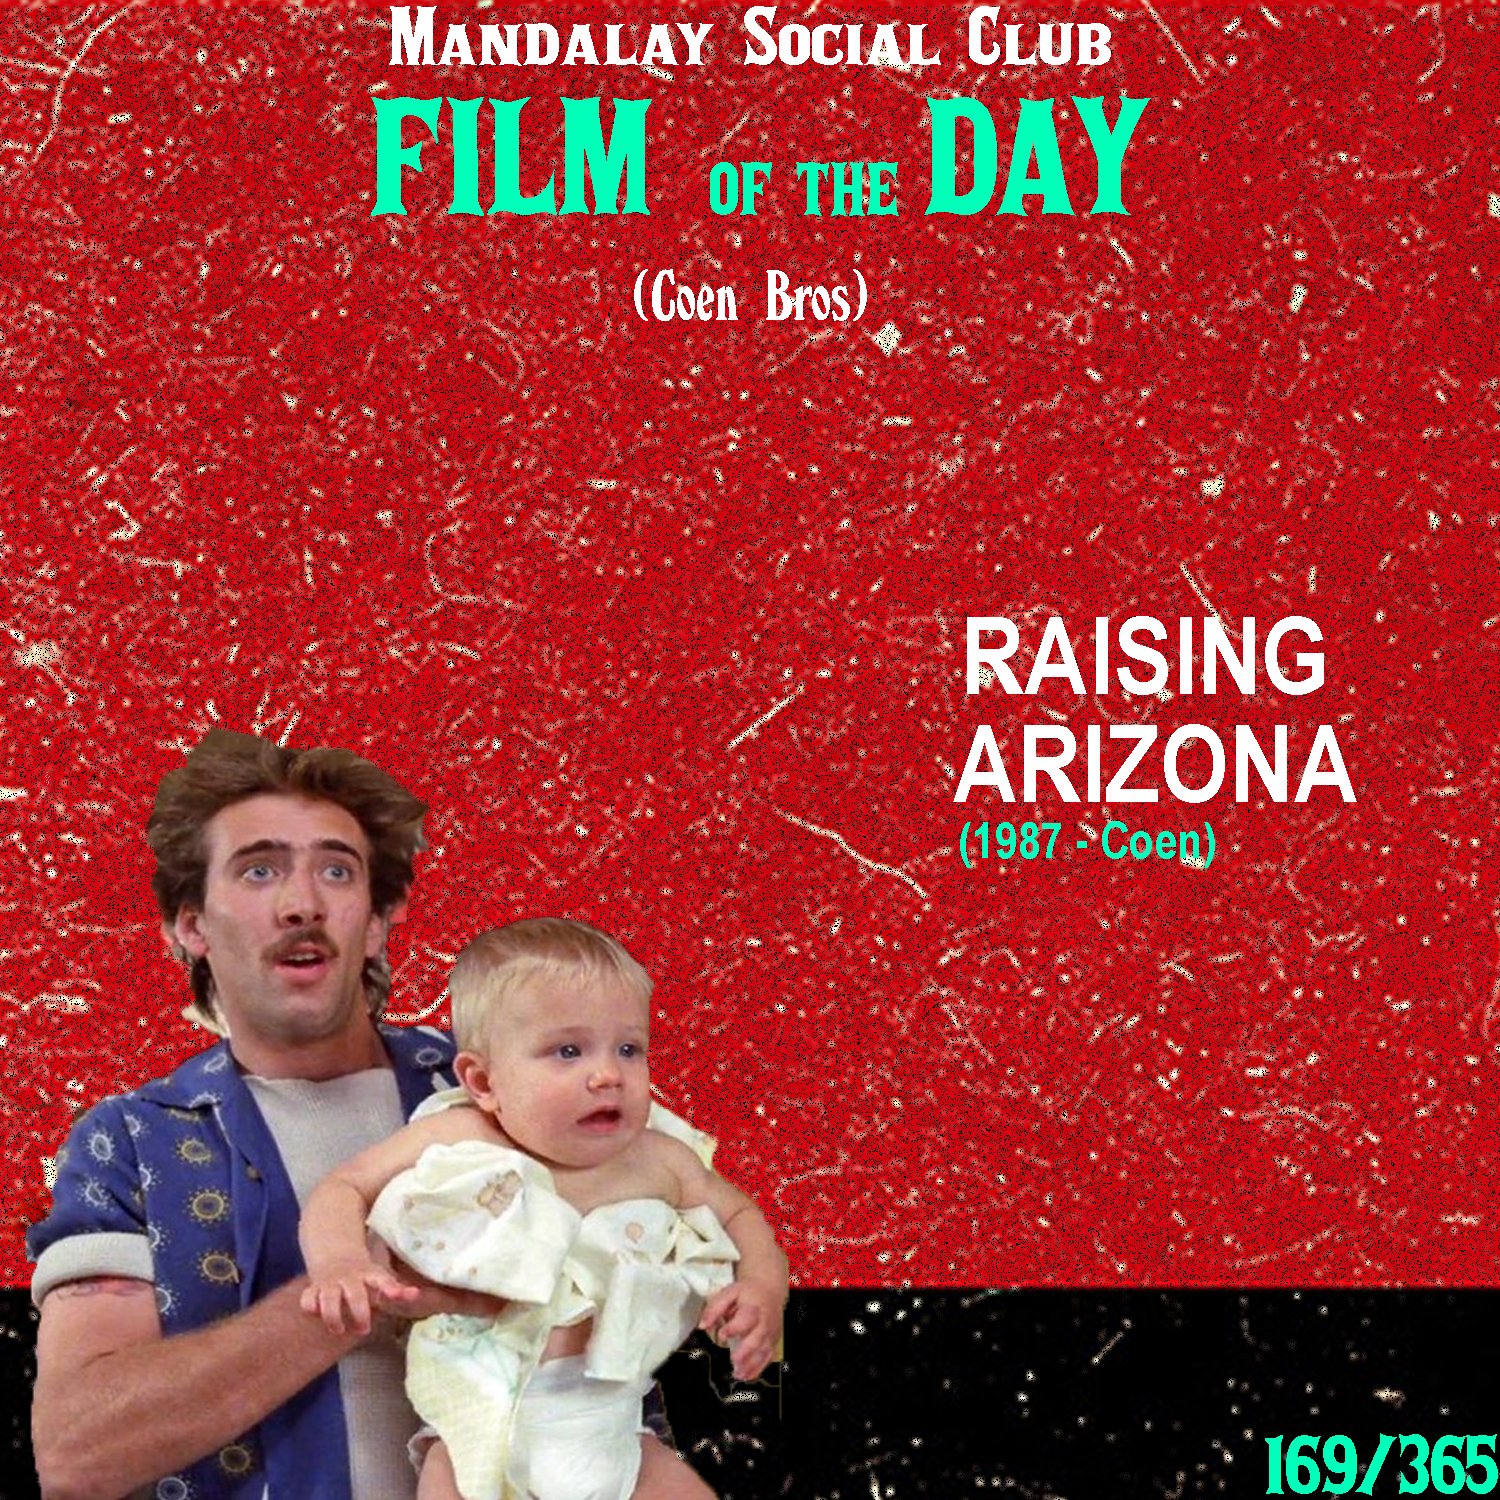 RAISING ARIZONA     (dir. Coen Bros)   The Coen's sophomore effort introduced them to the comedy genre, which would become a massive staple in the Coen's filmography from this point on.  Nicolas Cage and Holly Hunter star as the Mcdonough's, a couple made up of Hi and Ed, a criminal and cop respectively. The two meet and get married after Hi's frequent trips to the local jail. After finding out that Ed is infertile, herself and Hi get the idea that they ought to steal one of five Arizona children born to local millionaire Nathan Arizona. Once they get away with it, they realize that Mr. Arizona has sent a bounty hunter on their trail to return the missing child back to his rightful home.  The Coen's have been known for their stark use of comedy and  Raising Arizona  still holds up as one of the funniest films in their lengthy filmography. Nicolas Cage gives the performance of a lifetime as Hi, while the Coen's are able to masterfully match Cage's high energy with an idiosyncratically bizarre universe where these characters traverse.    5/5     WATCH: Putlocker (FREE), iTunes (RENT)